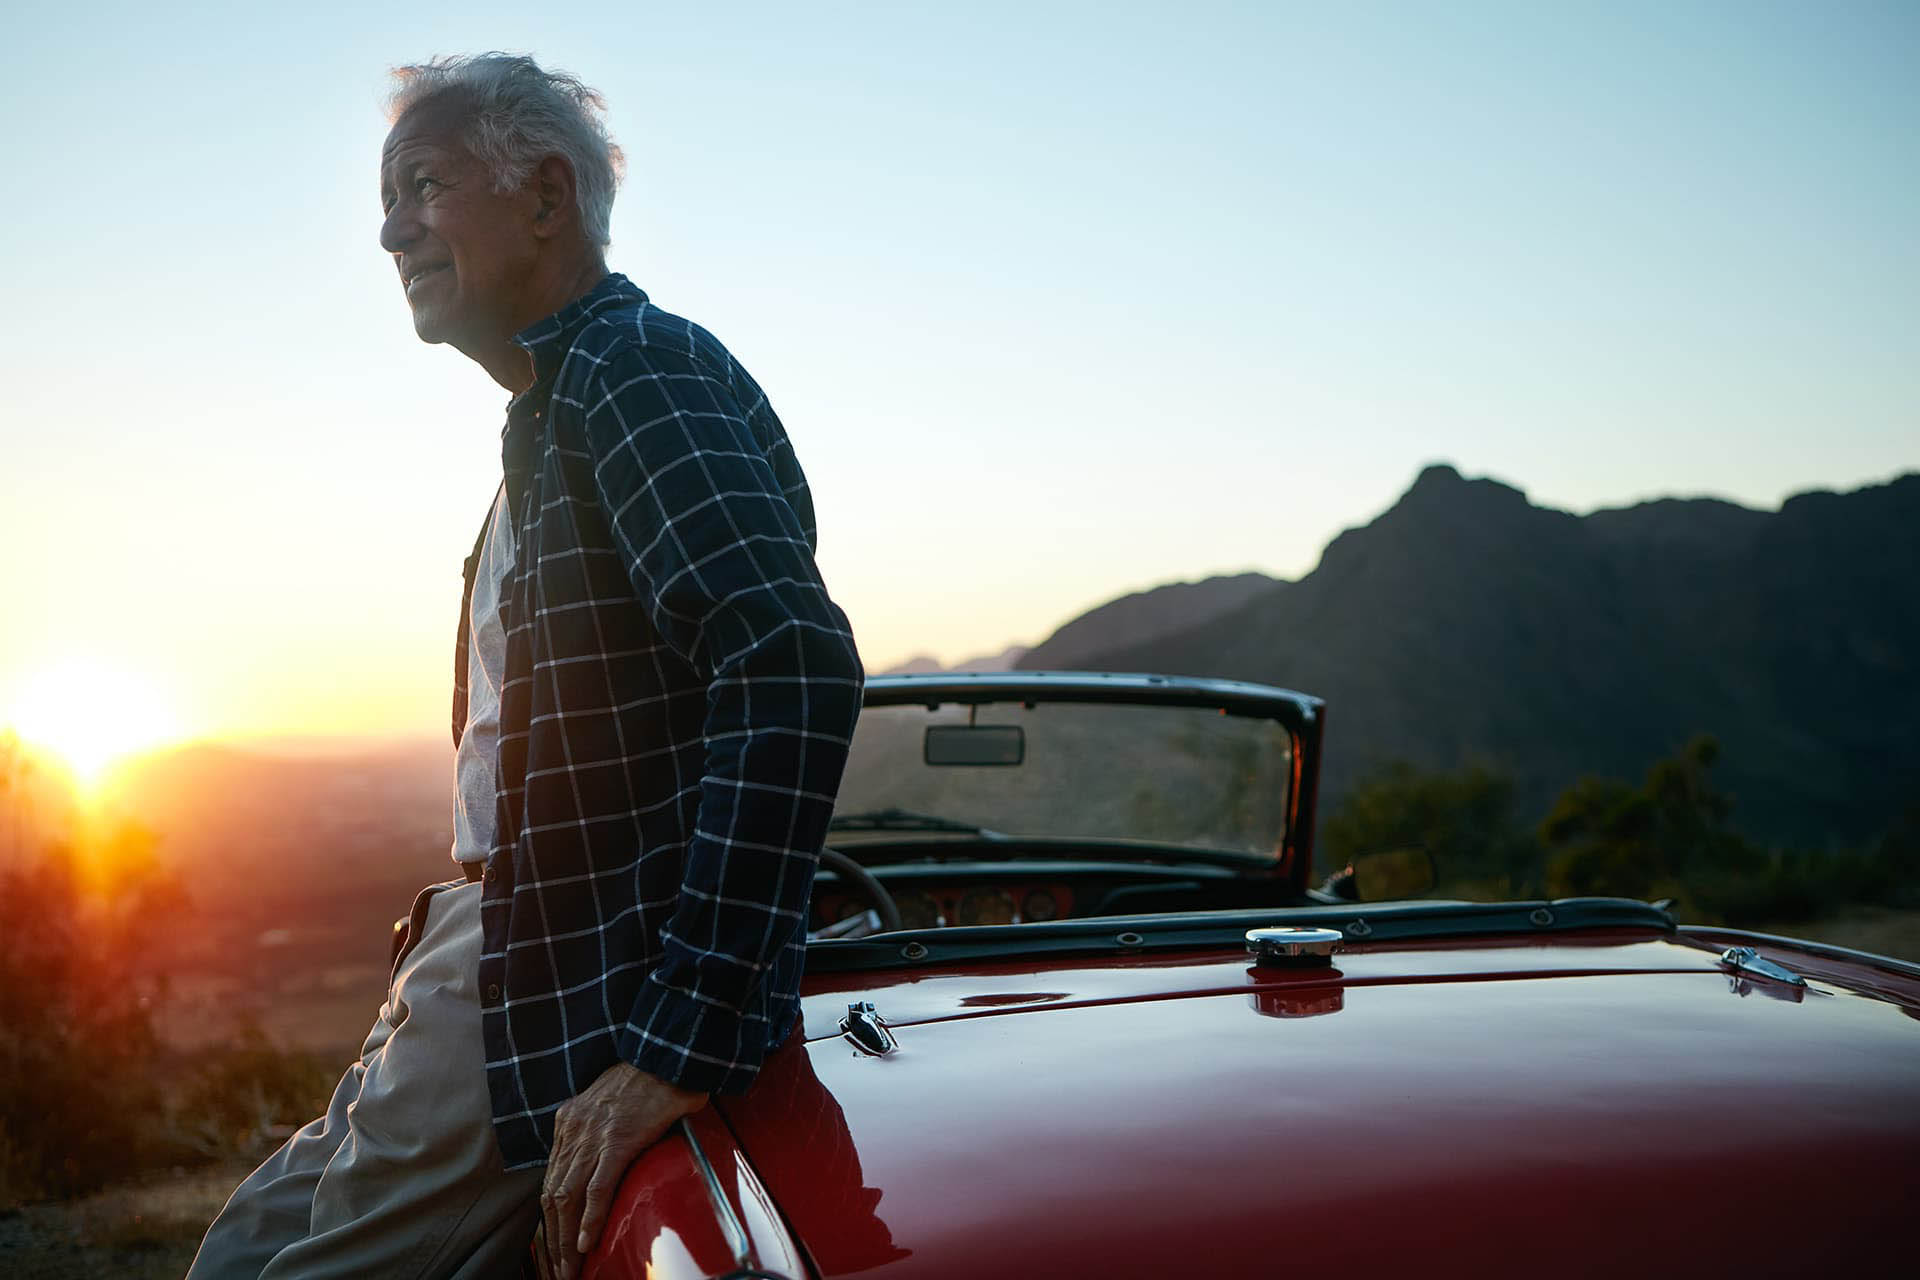 Elderly man with over 50 car insurance leaning on his red convertible car